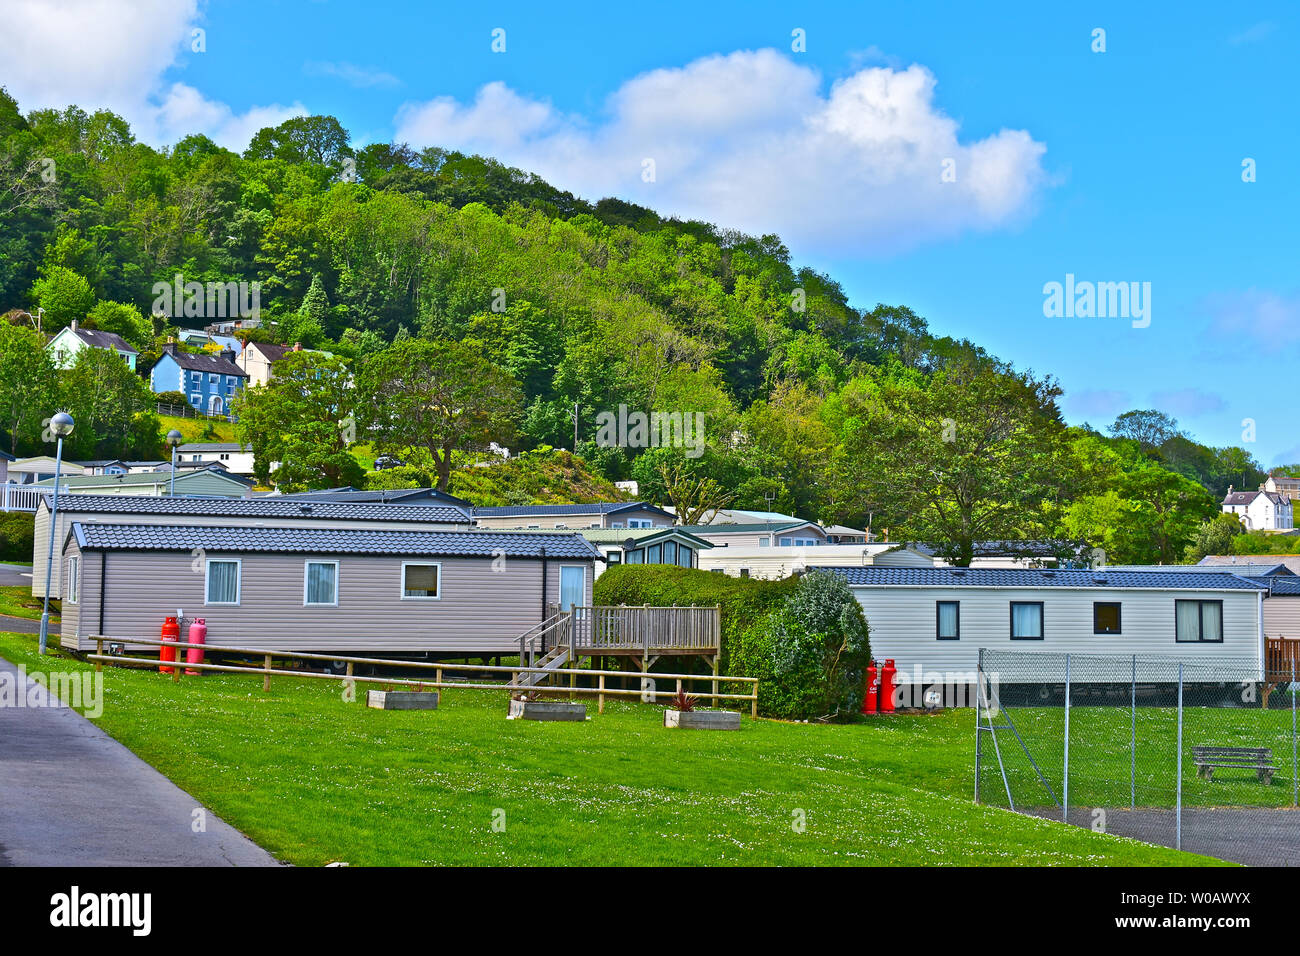 A view of static holiday caravans which overlook Cardigan Bay near Newquay in West Wales.Blue skies & white clouds. Attractive wooded background. - Stock Image